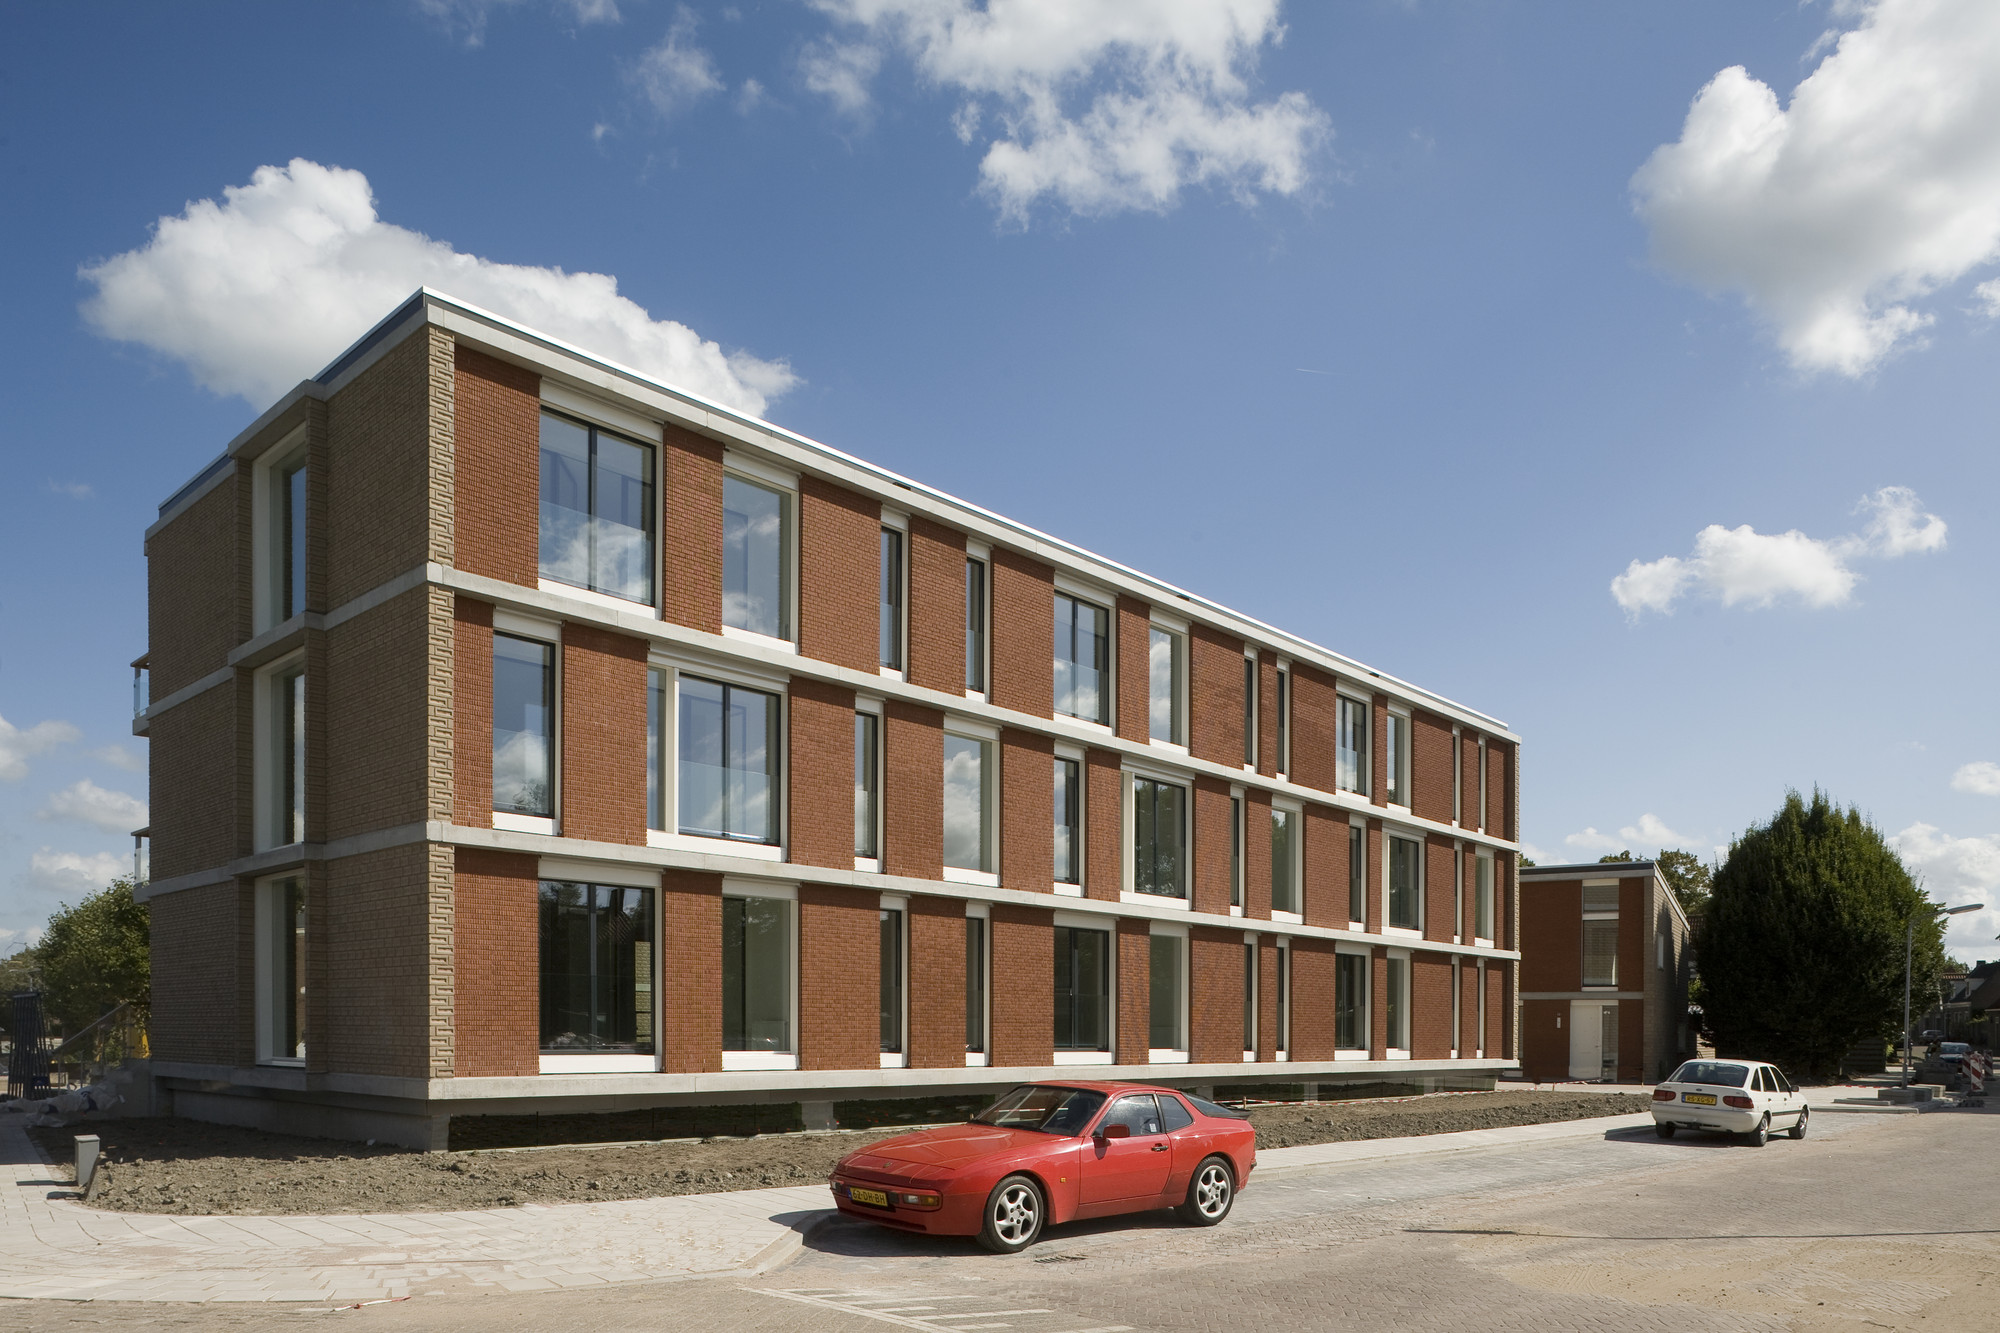 30 Senior Housing / Bastiaan Jongerius Architecten, Courtesy of Bastiaan Jongerius Architecten